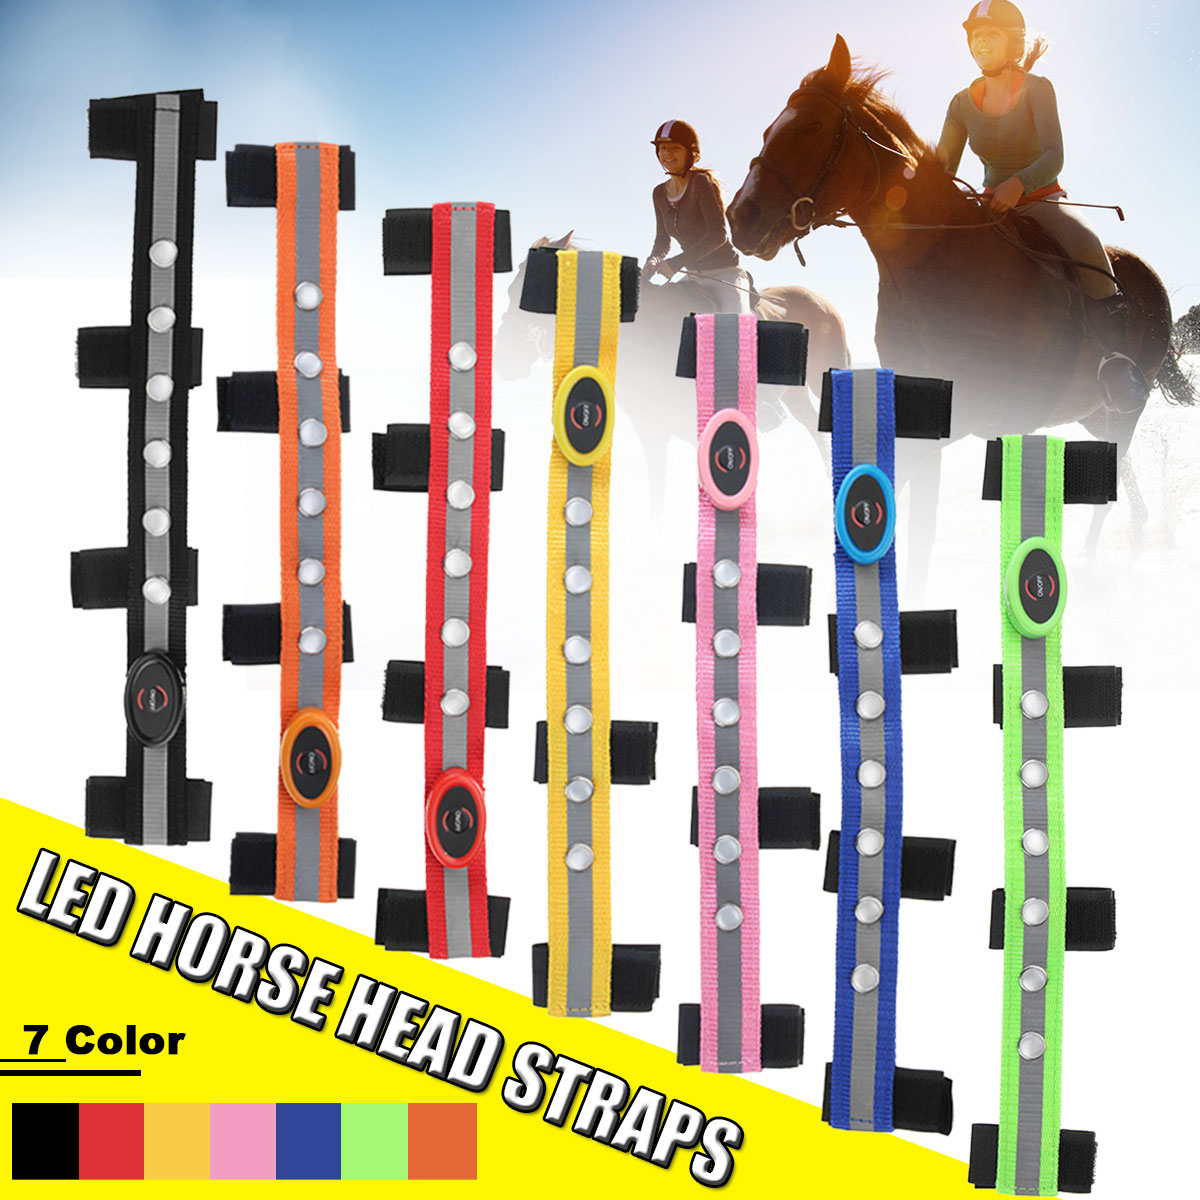 LED Horse Head Straps Night Visible Paardensport Equitation Multi-Color Optional Horse Breastplate Decoration Riding Strip